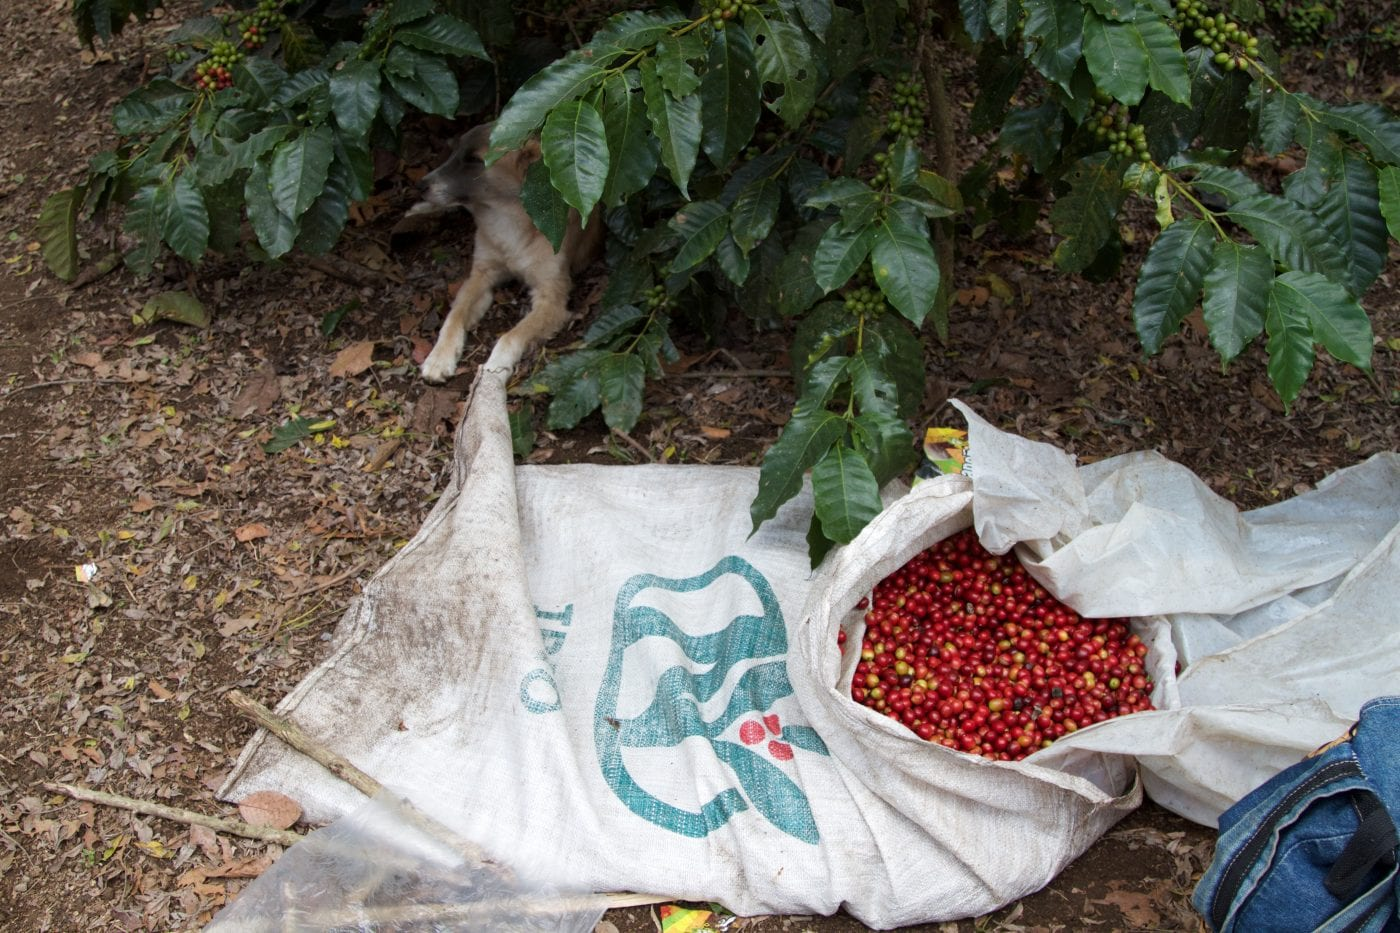 Coffee being harvest in full swing